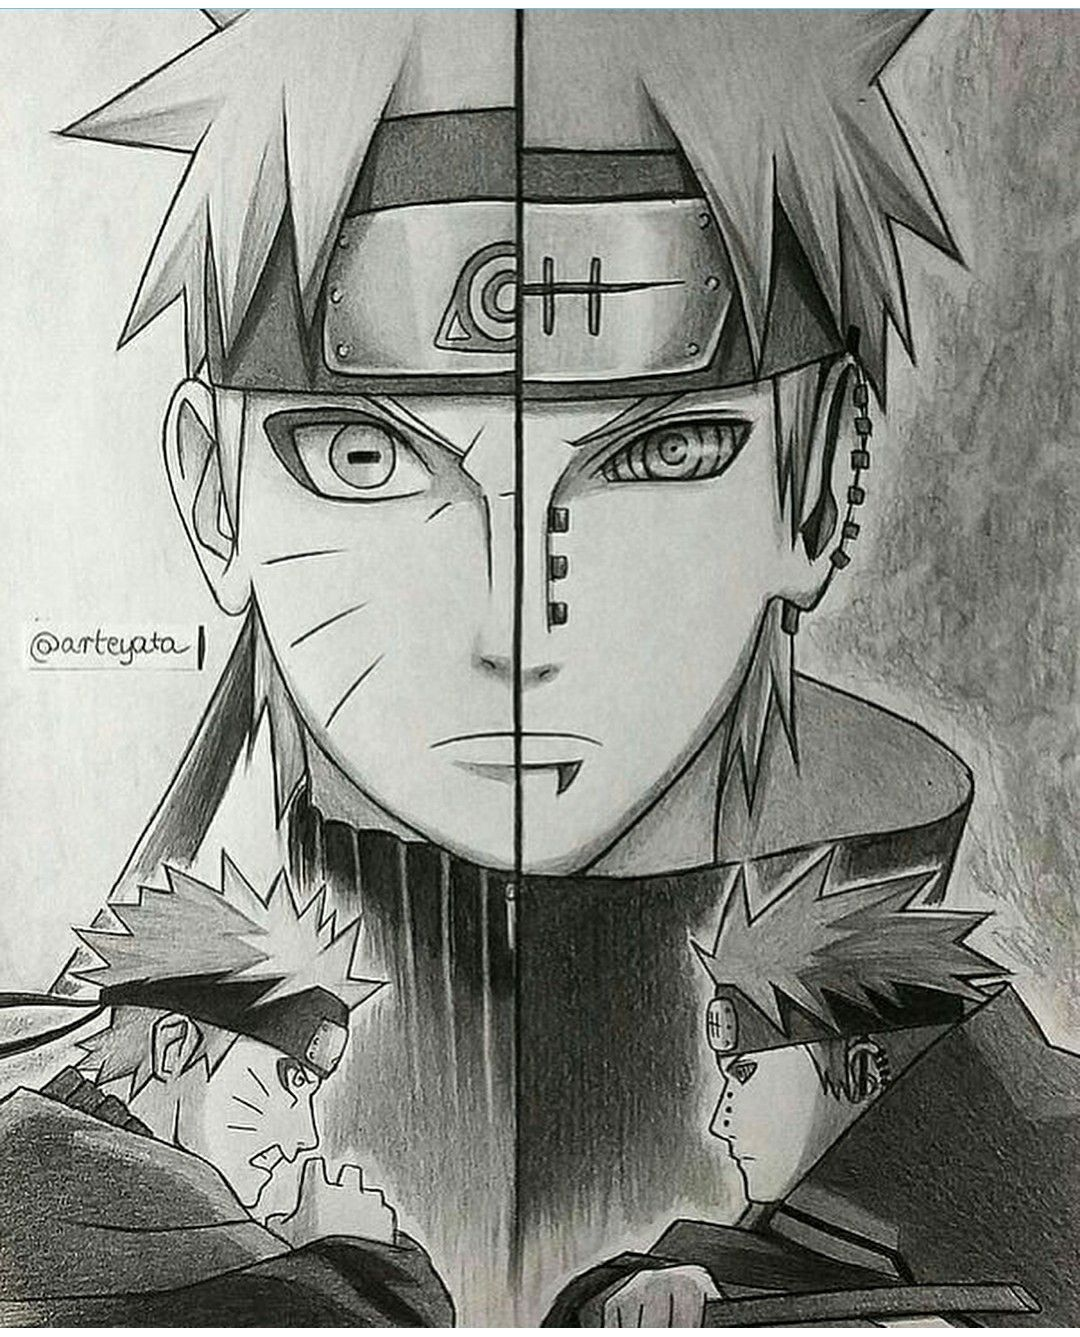 Naruto Nagato The Sibling Disciple Credits Arteyata With